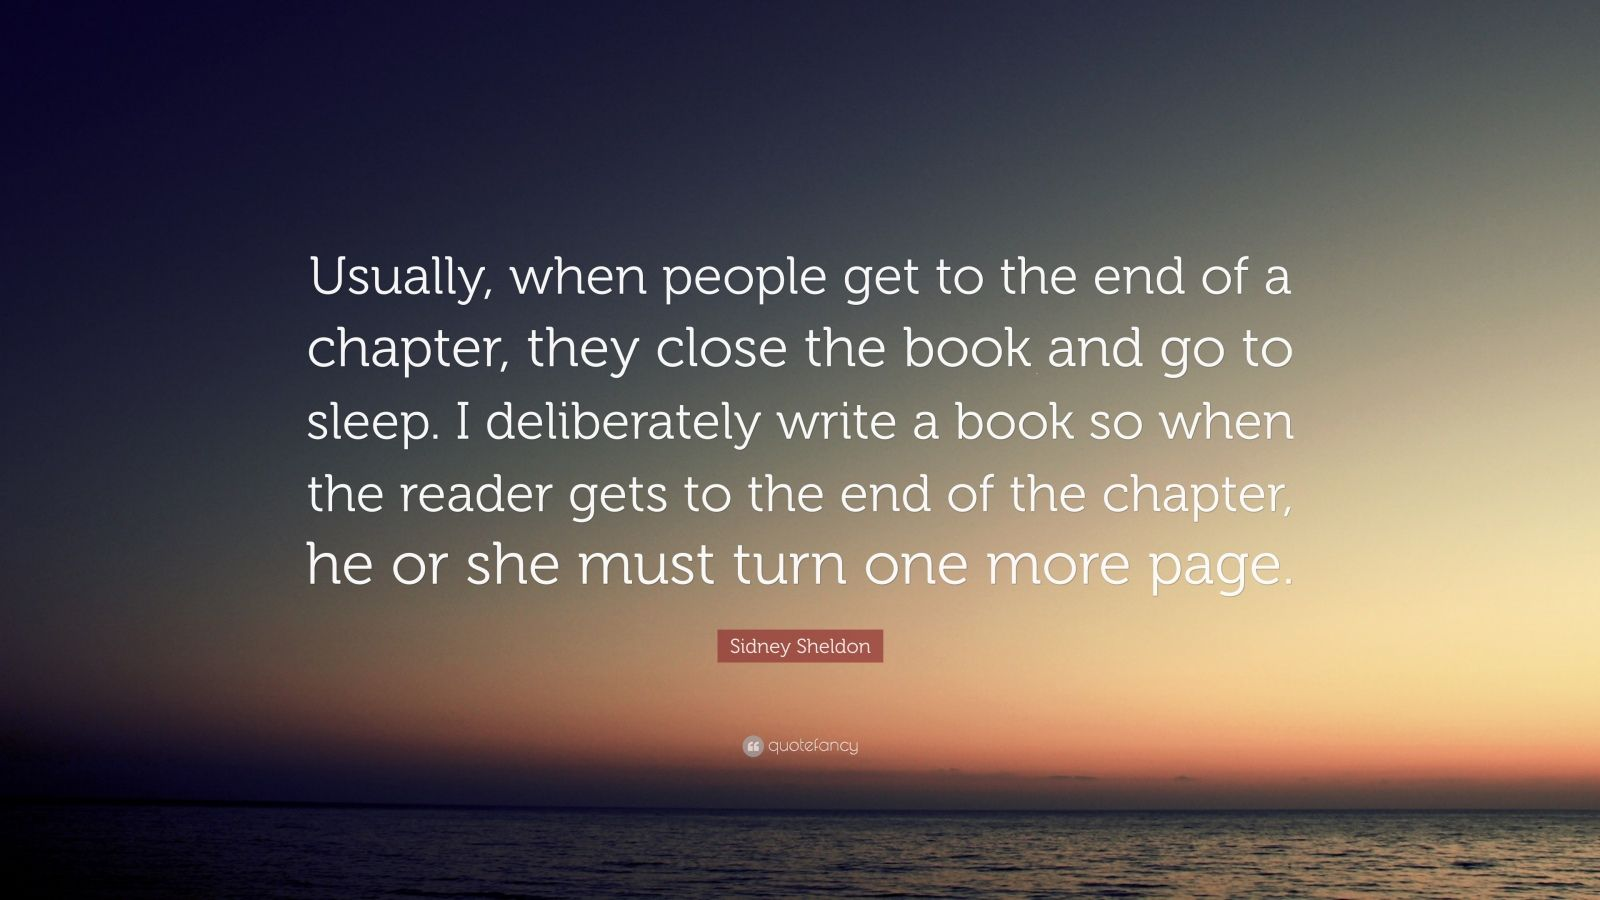 """Sidney Sheldon Quote: """"Usually, when people get to the end of a chapter, they close the book and go to sleep. I deliberately write a book so when the reader gets to the end of the chapter, he or she must turn one more page."""""""